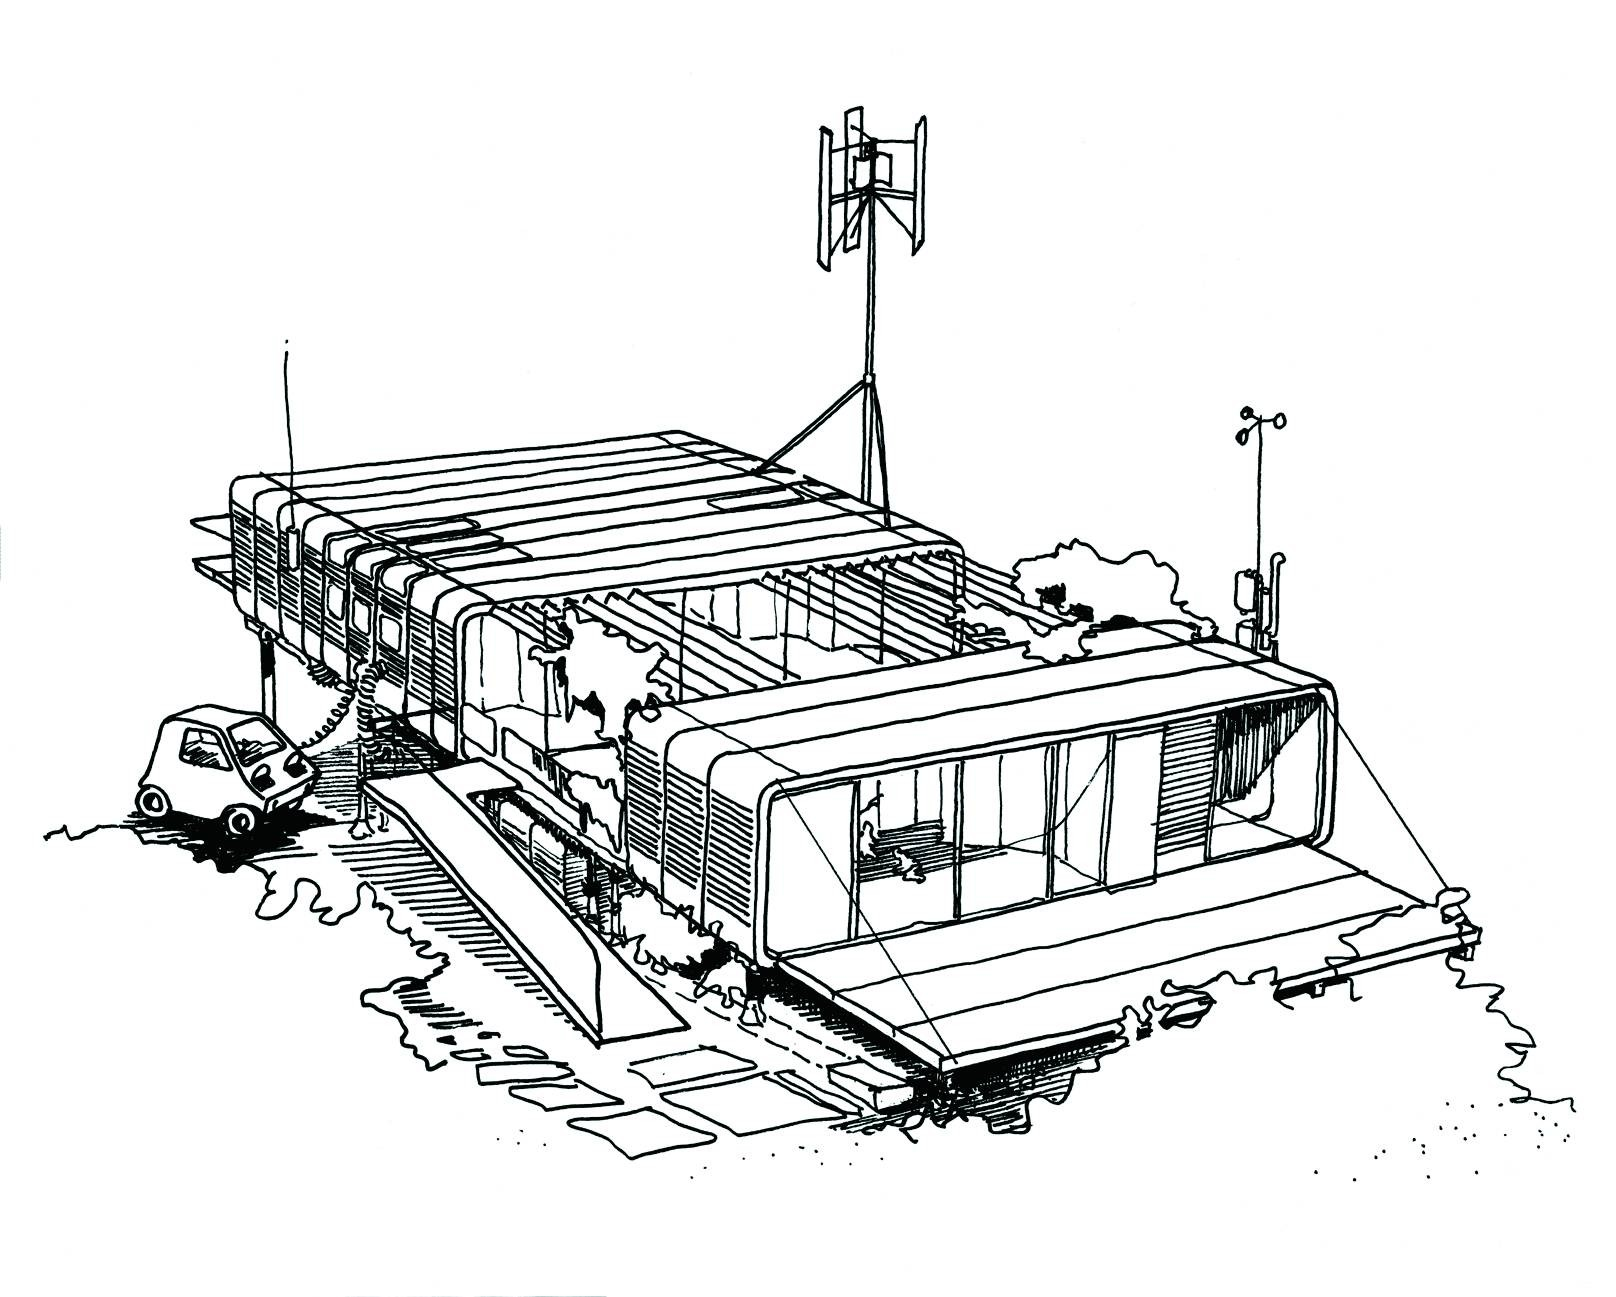 Zip up house concept drawing 1968 courtesy of rogers stirk harbour partners image richard and su rogers